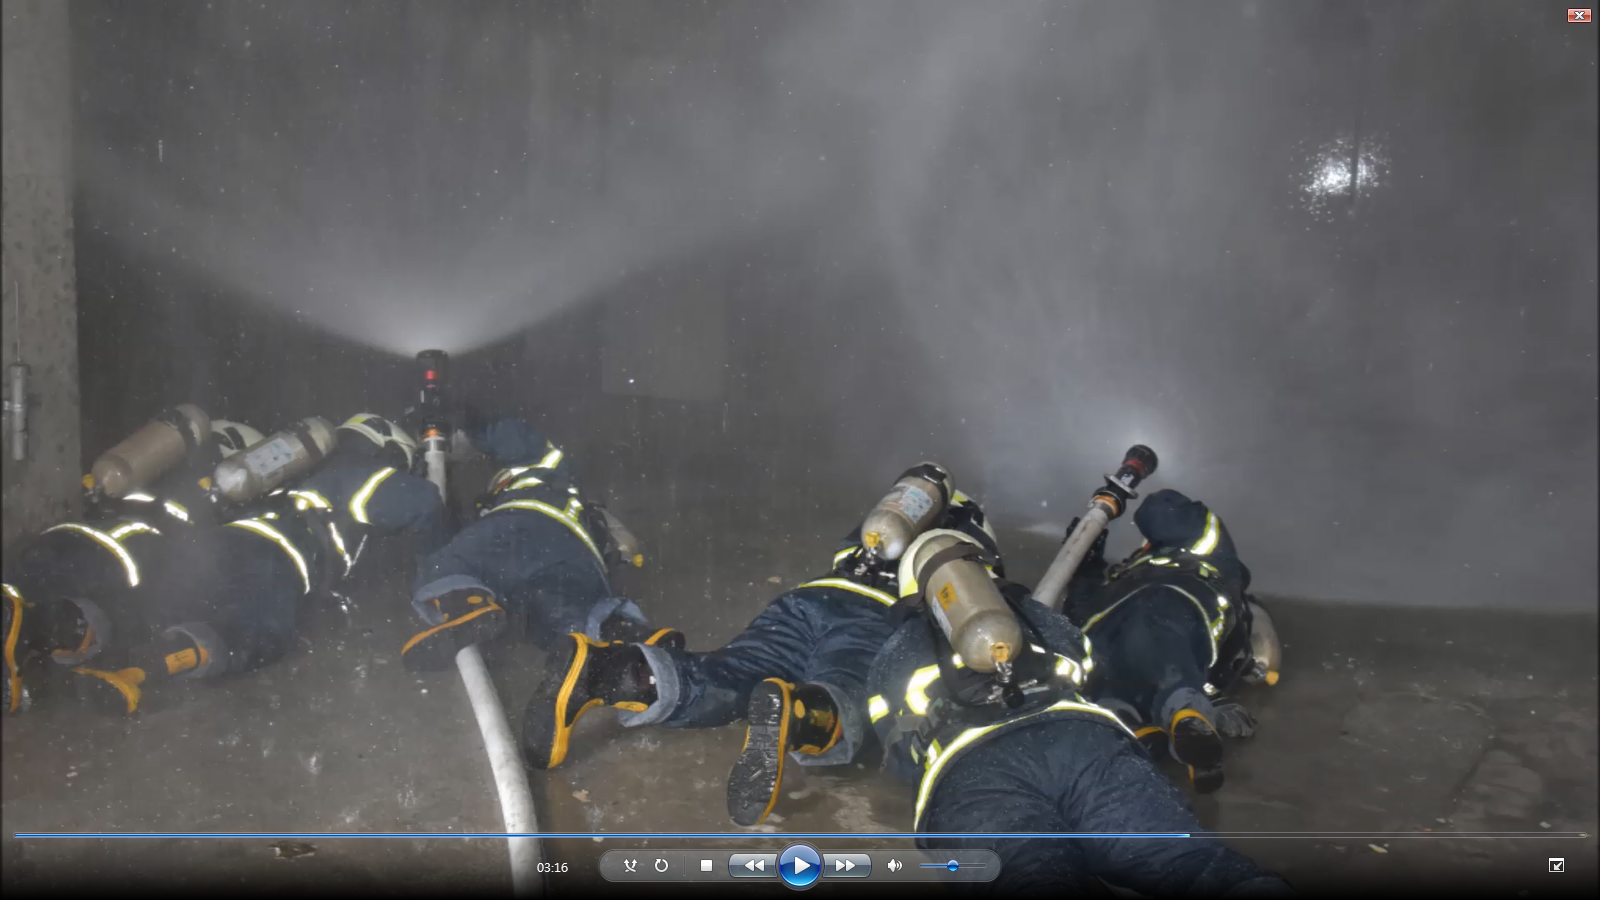 Trainees learn to contain the fire (a simulated drill).